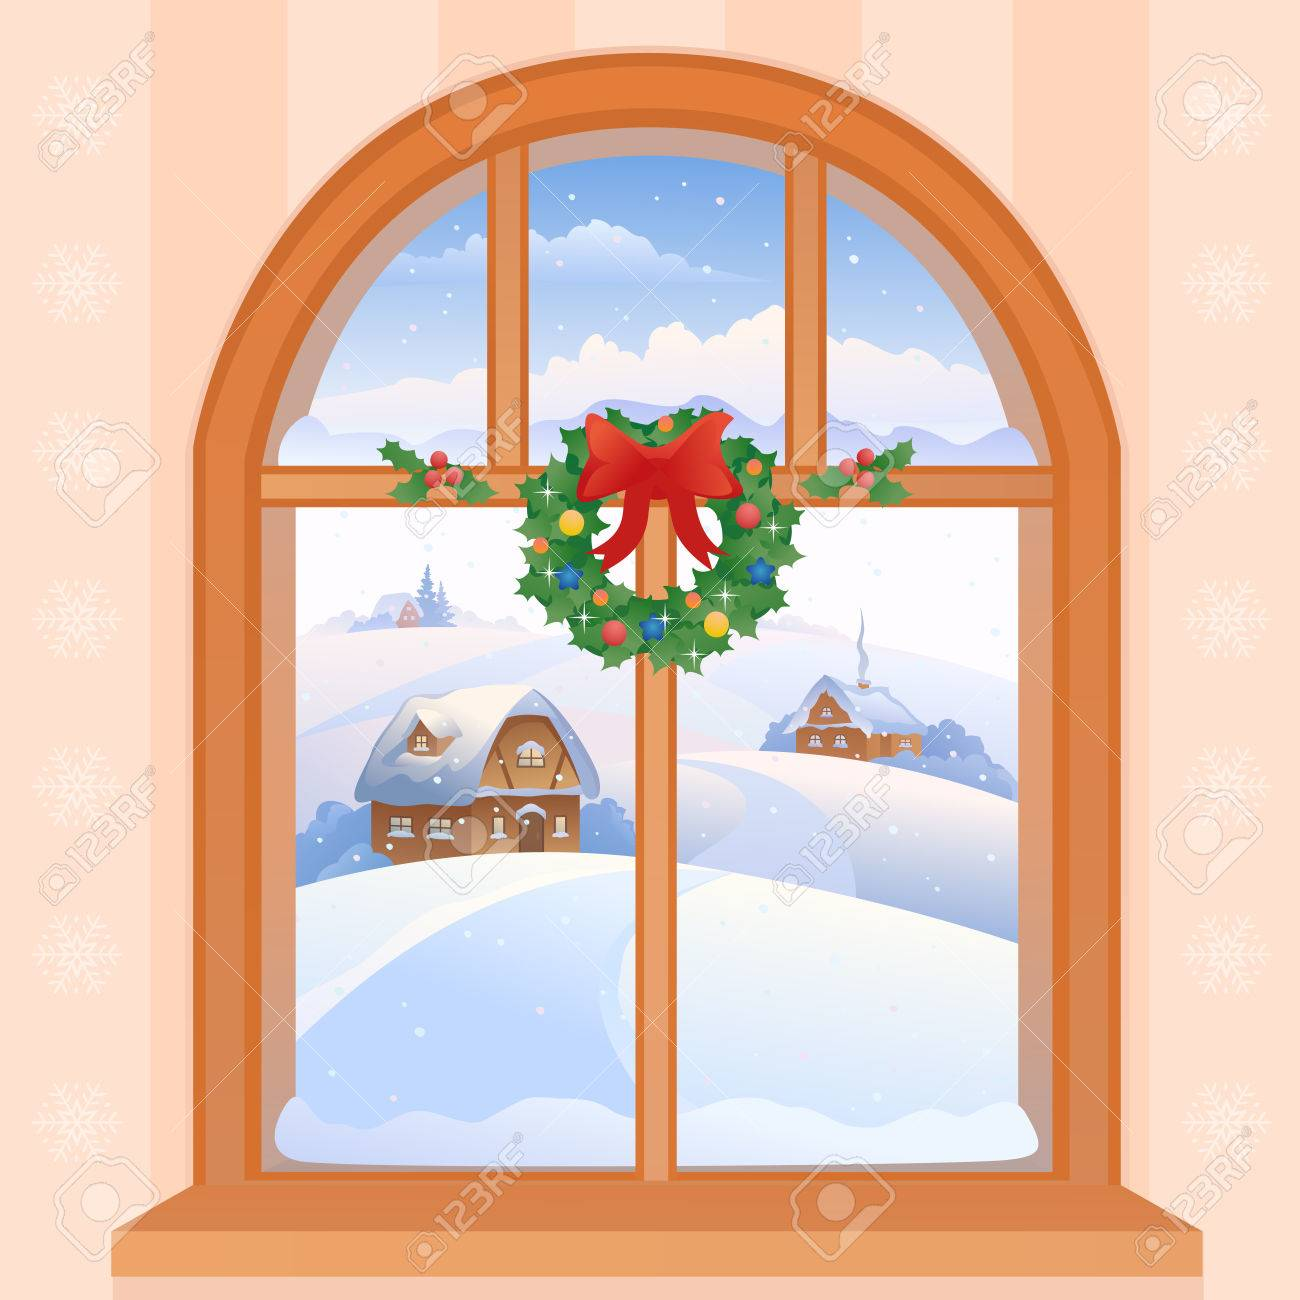 Vector illustration of a Christmas window view with a snowy landscape.